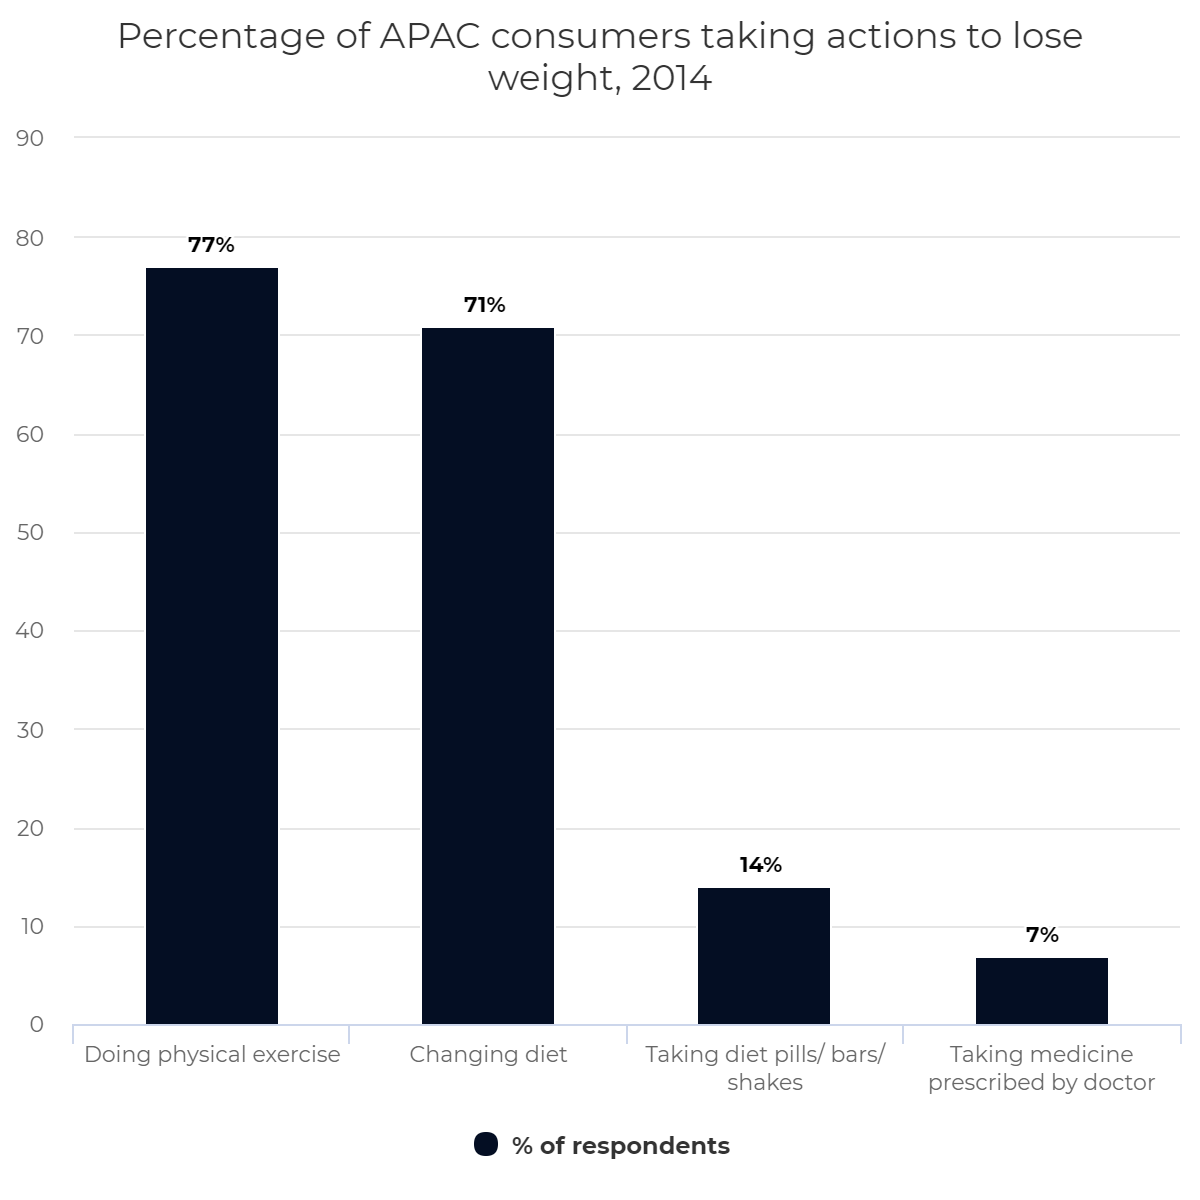 Percentage of APAC consumers taking actions to lose weight, 2014